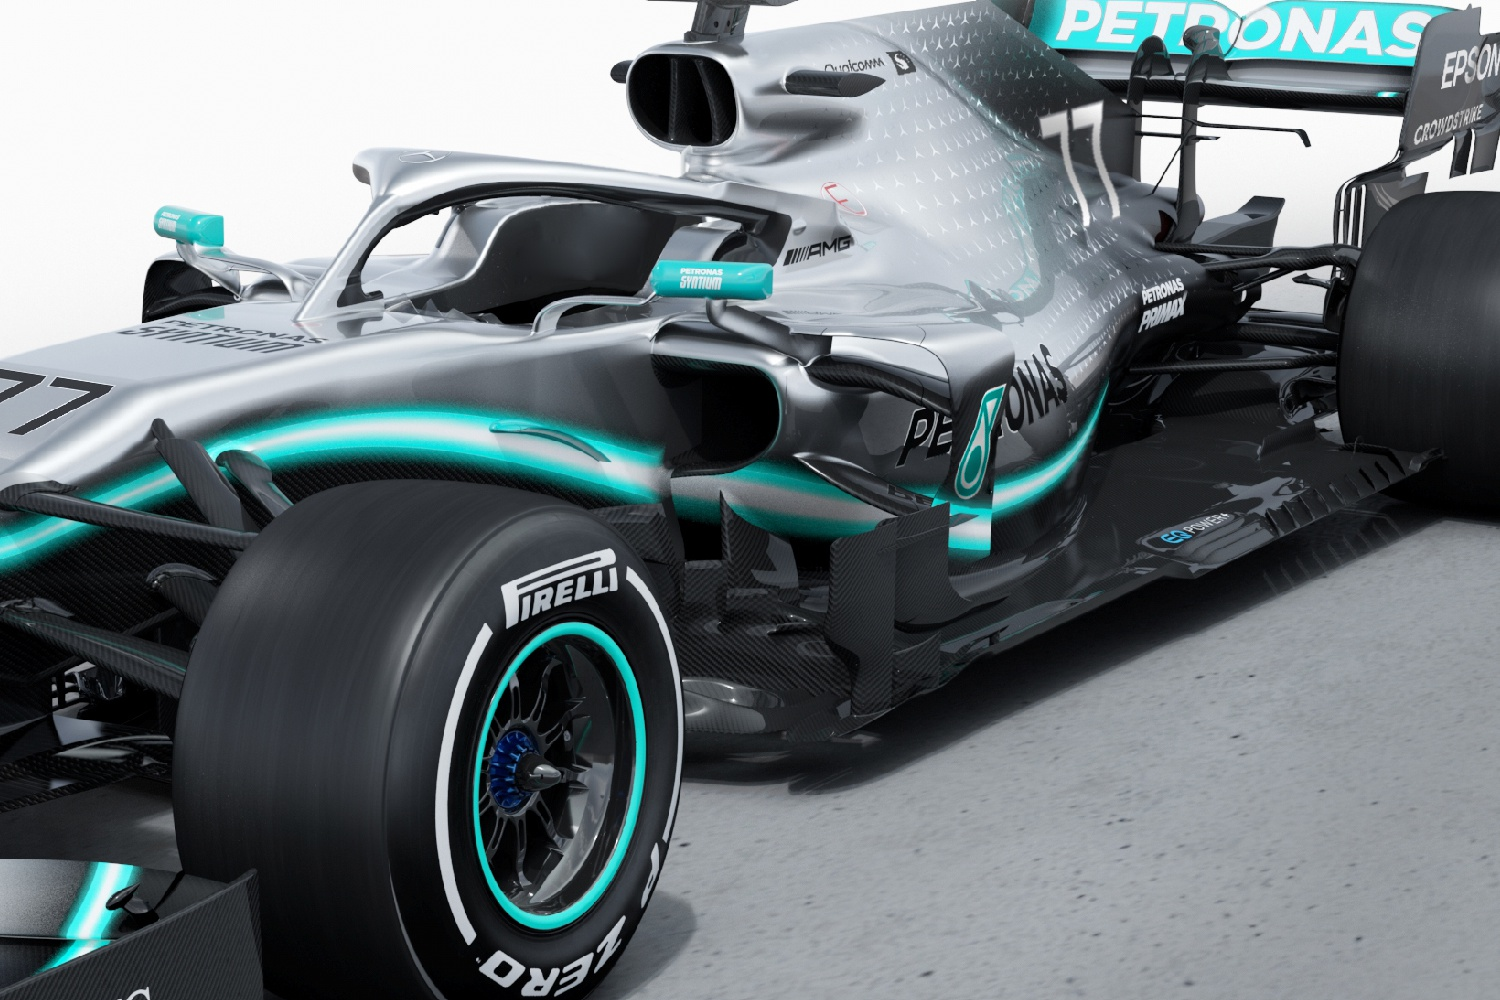 Mercedes-AMG F1 W10 EQ Power +